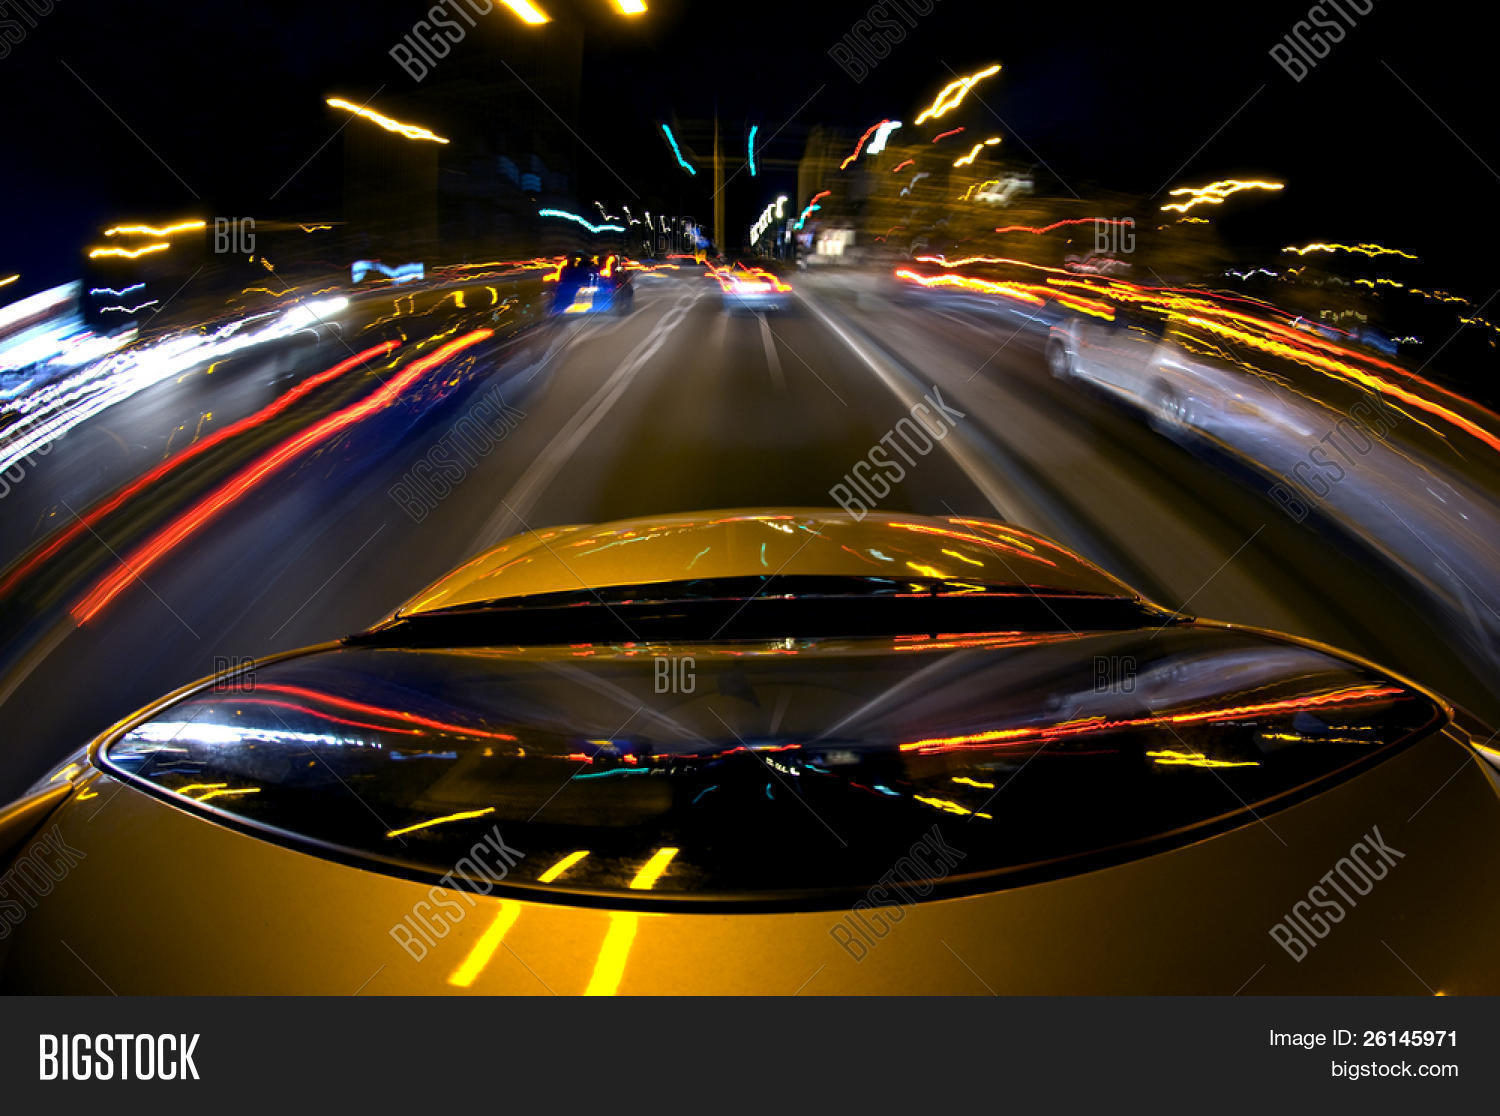 accellerating,agressive,asphalt,automobile,automotive,bend,blue,blur,bonnet,braking,busy,car,chaos,chaotic,cruising,curve,downtown,driving,dusk,dynamic,fast,fast car,fisheye,frantic,freedom,glass,glow,headlights,hood,lanes,lights,lines,motion,neon,night,outside,racer,racing,reflection,ride,roof,speed,steel,streetlights,traffic,twilight,urban,vehicle,windshield,wipers